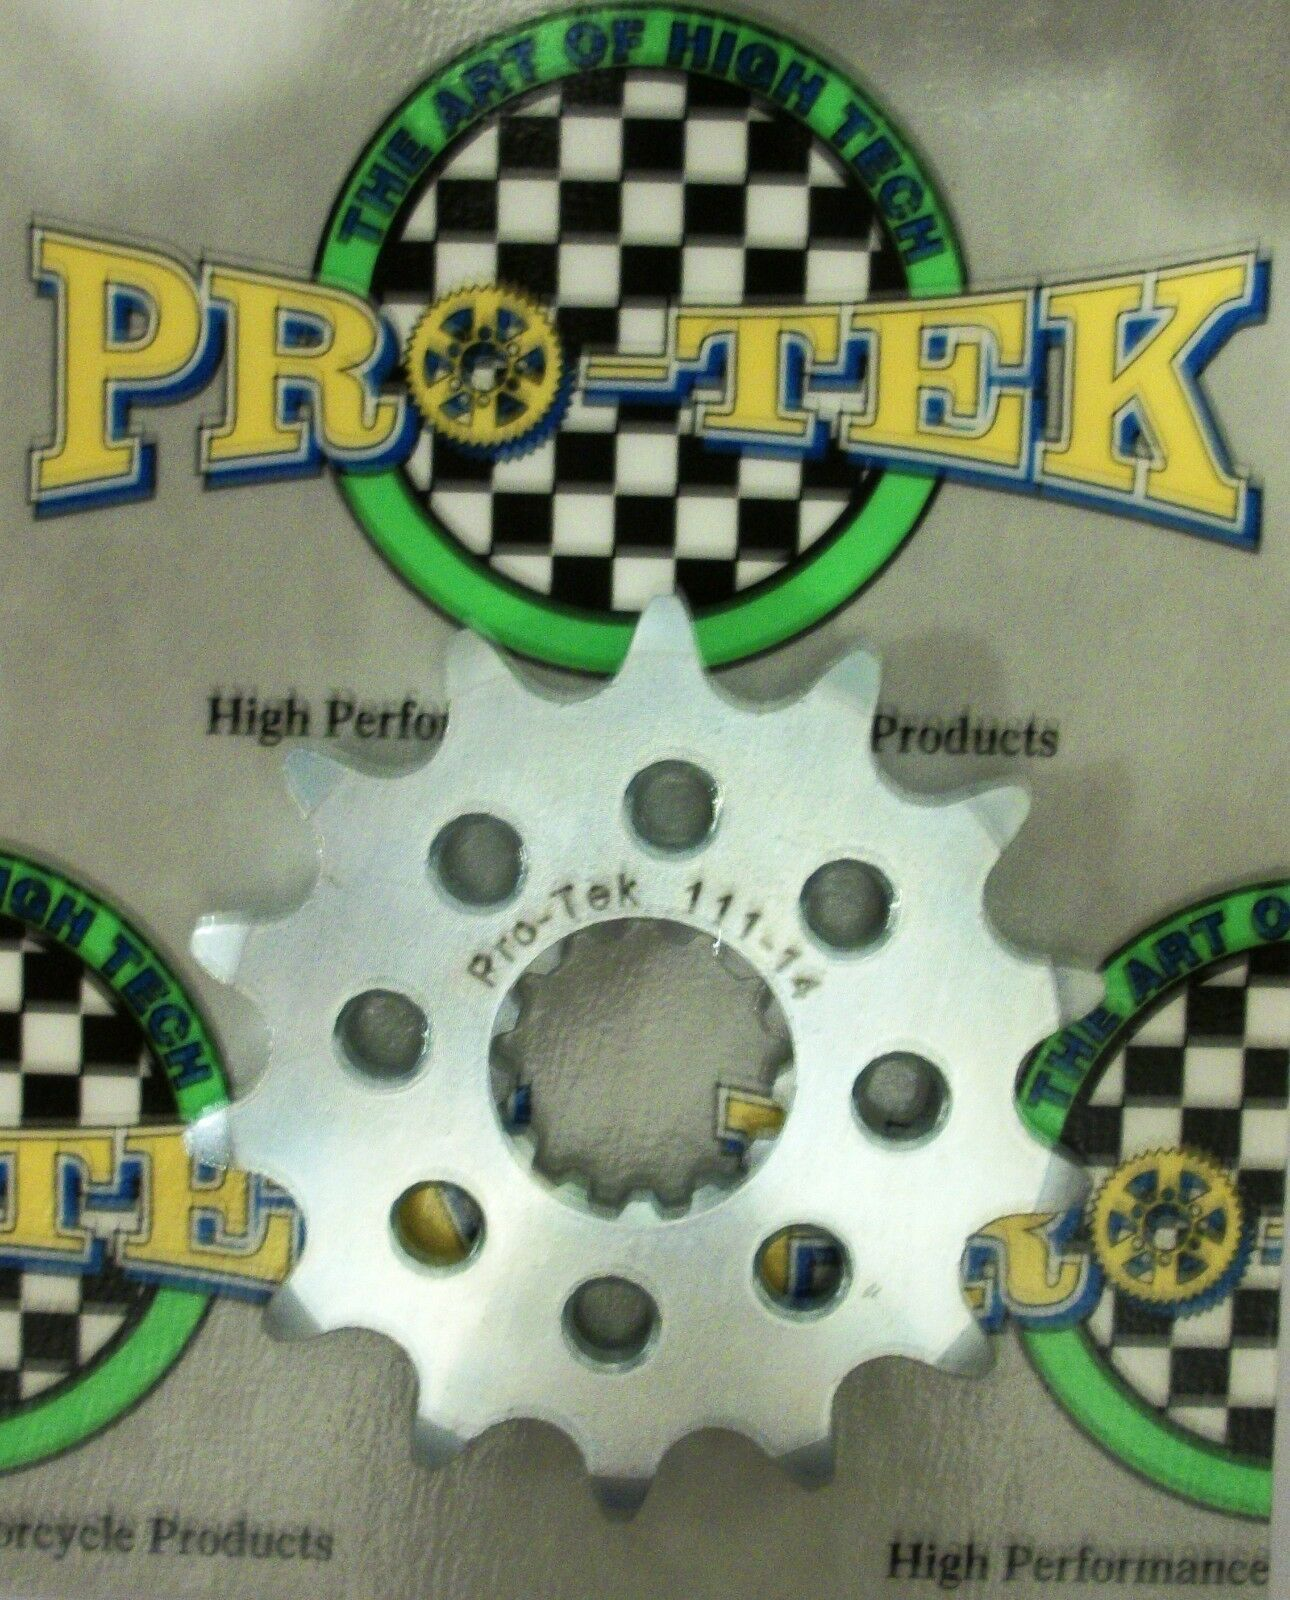 Primary image for Suzuki Front Sprocket 525 Pitch 13T 14T 15T 16T 17T 2009 2010 2011 2012 GSXR600